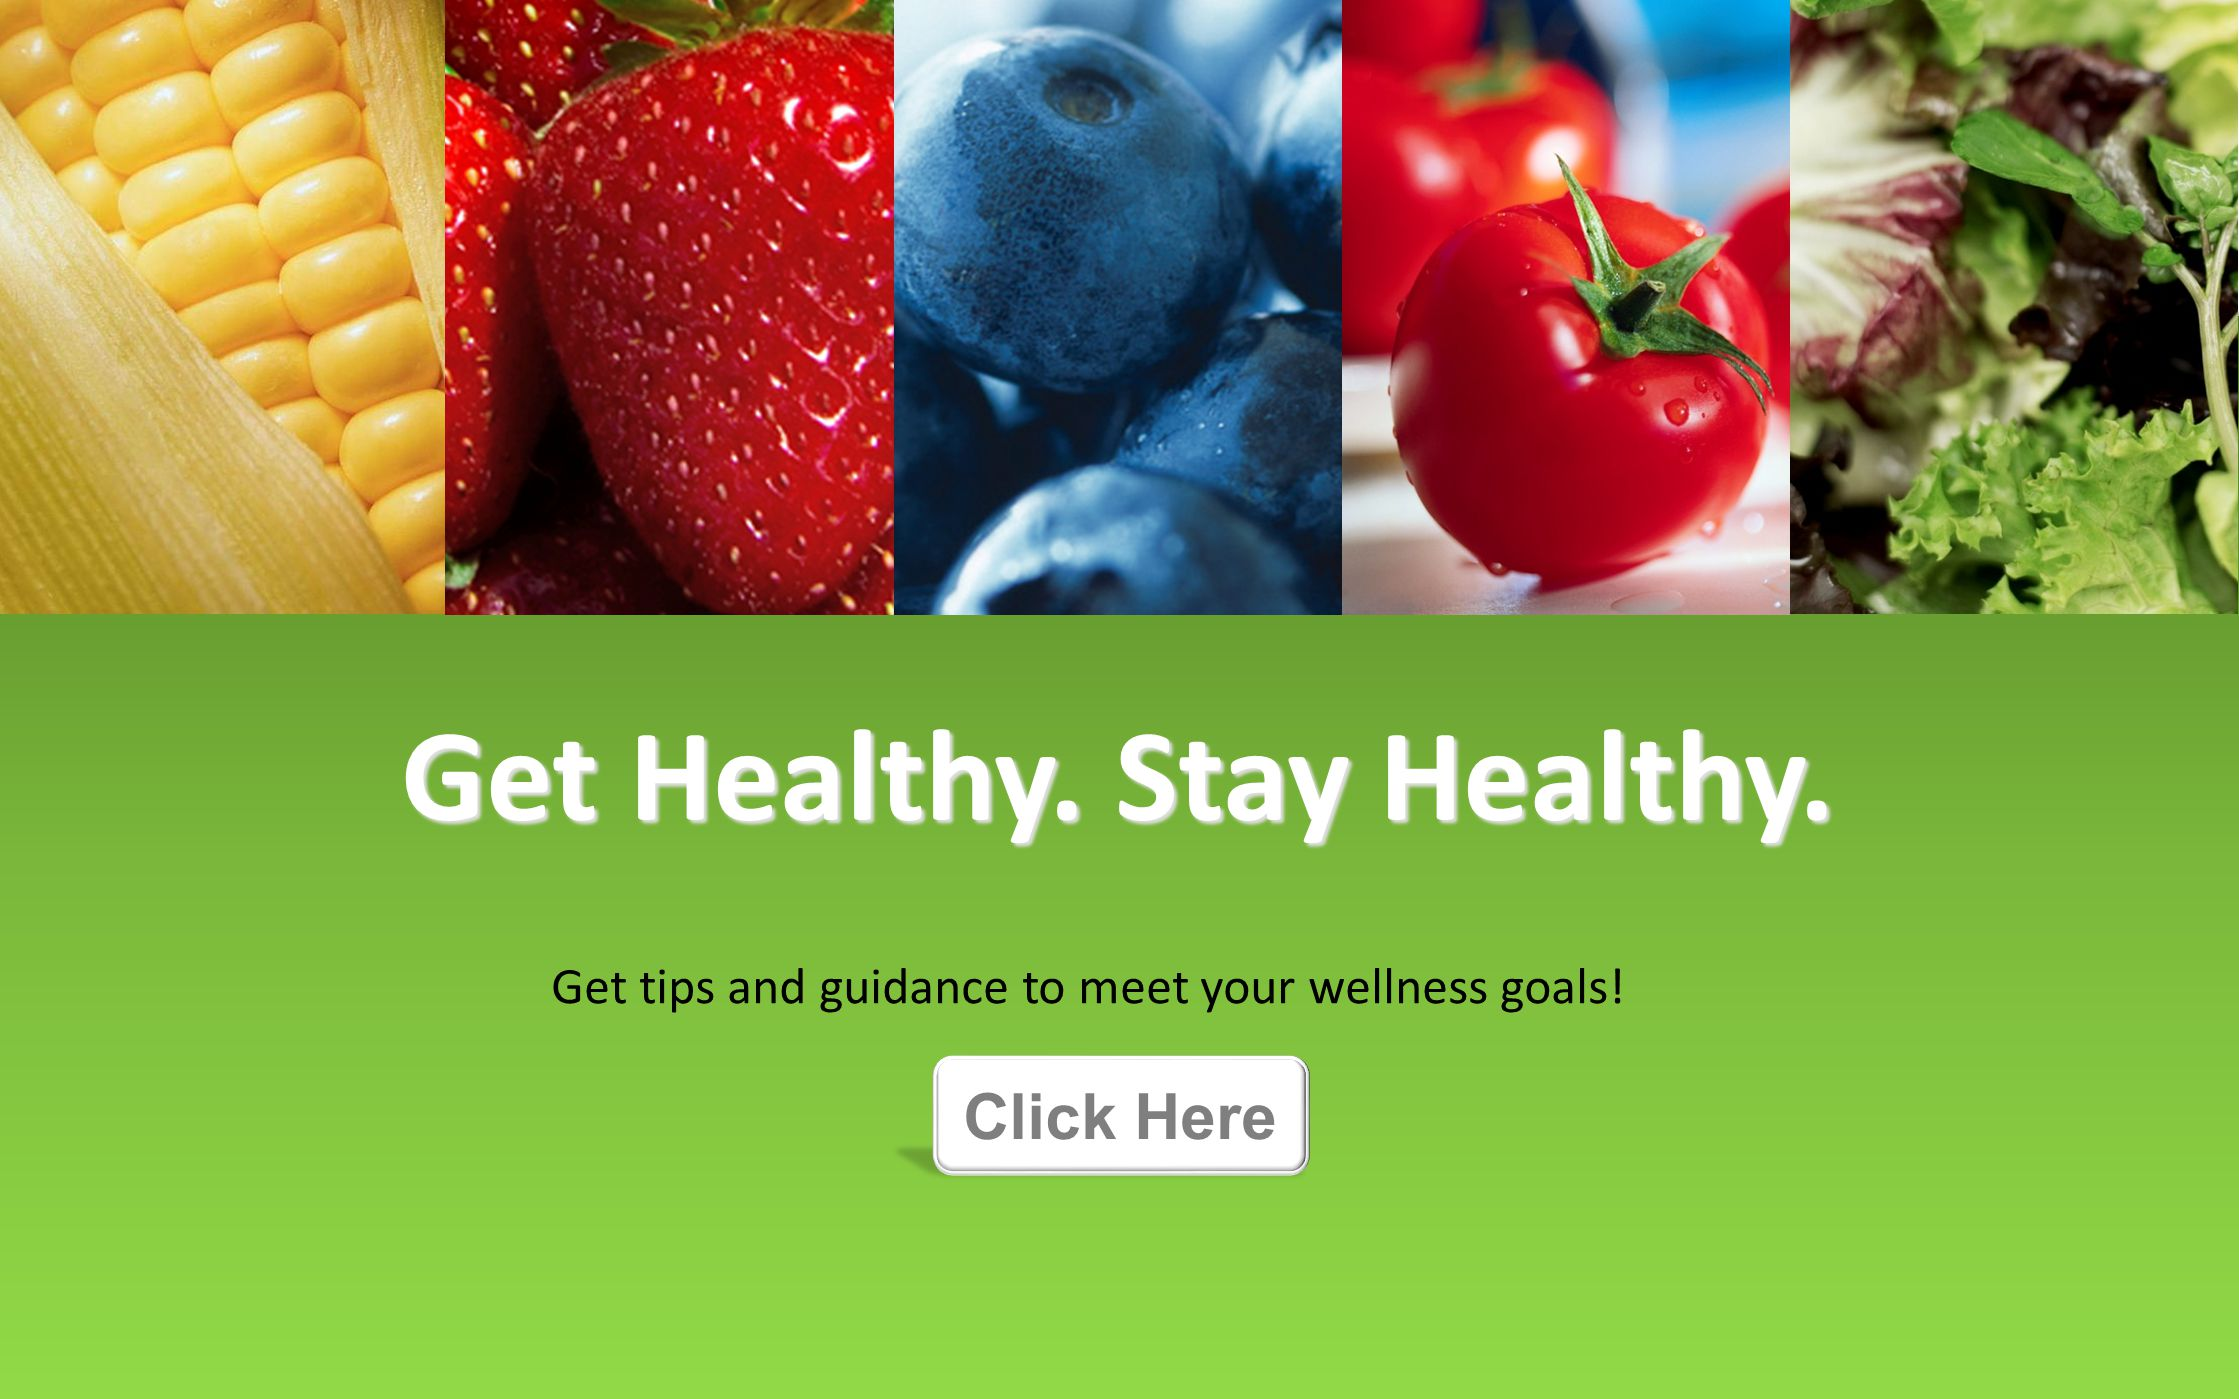 Get Healthy. Stay Healthy. Get tips and guidance to meet your wellness goals! Click Here